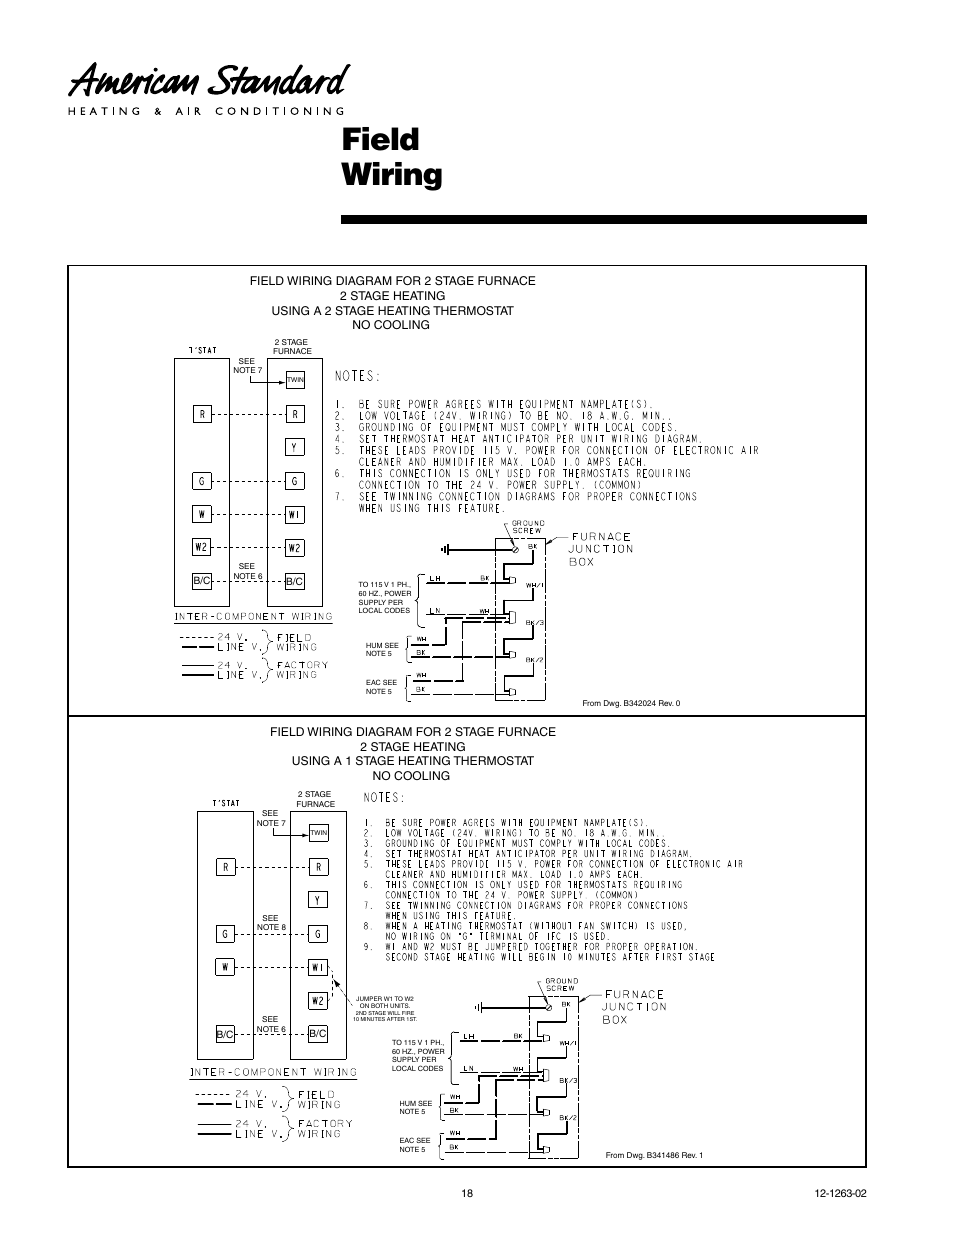 american standard freedom 80 page18 field wiring american standard freedom 80 user manual page 18 24 2-stage furnace thermostat wiring diagram at soozxer.org